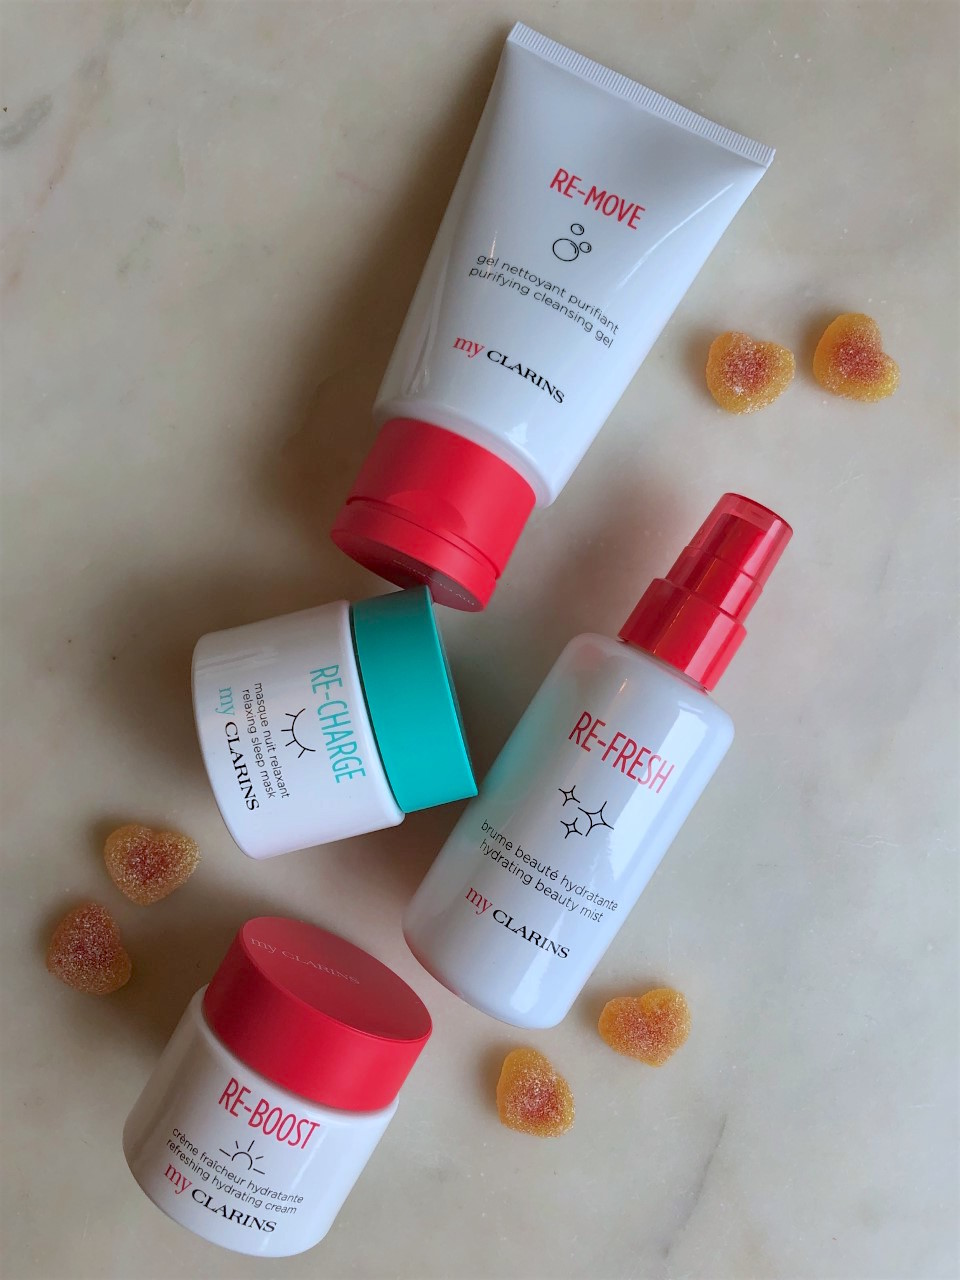 My Clarins Skincare line: A quick review